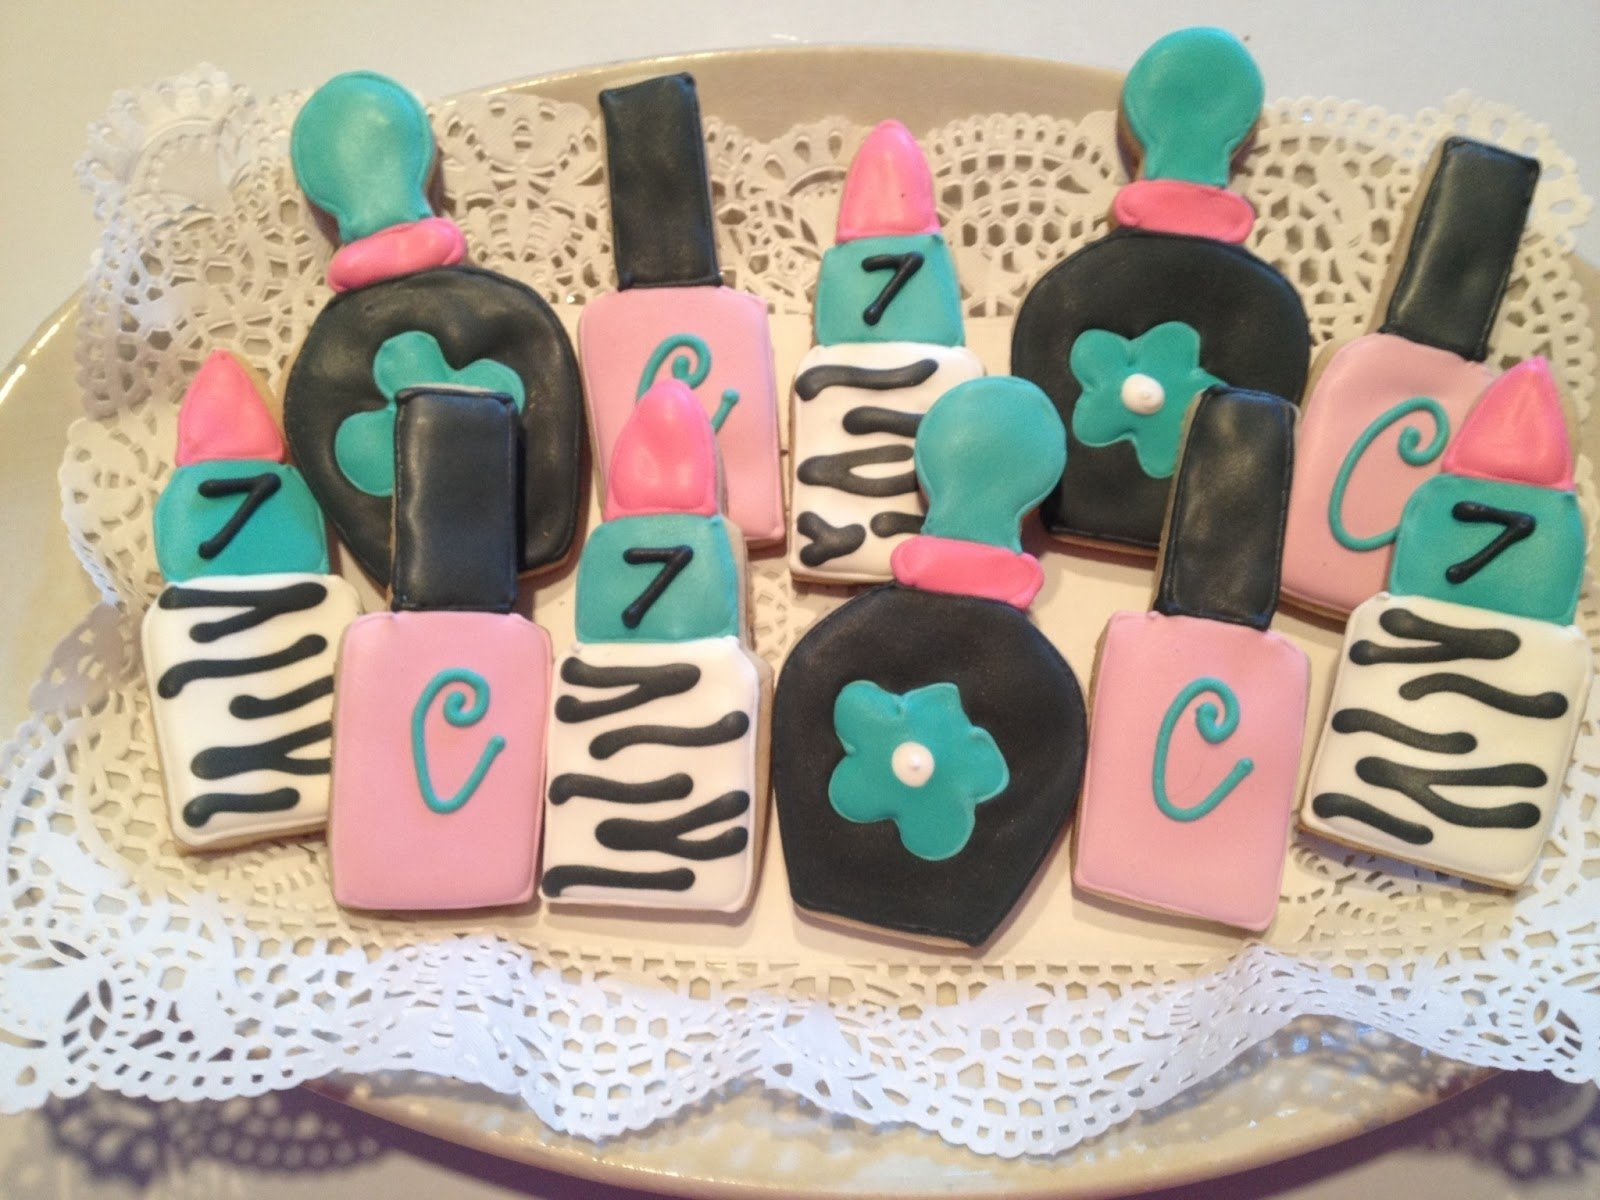 10 Nice 13 Year Old Birthday Party Ideas For Girls one preppy cookie spa birthday party cookies 2 2021